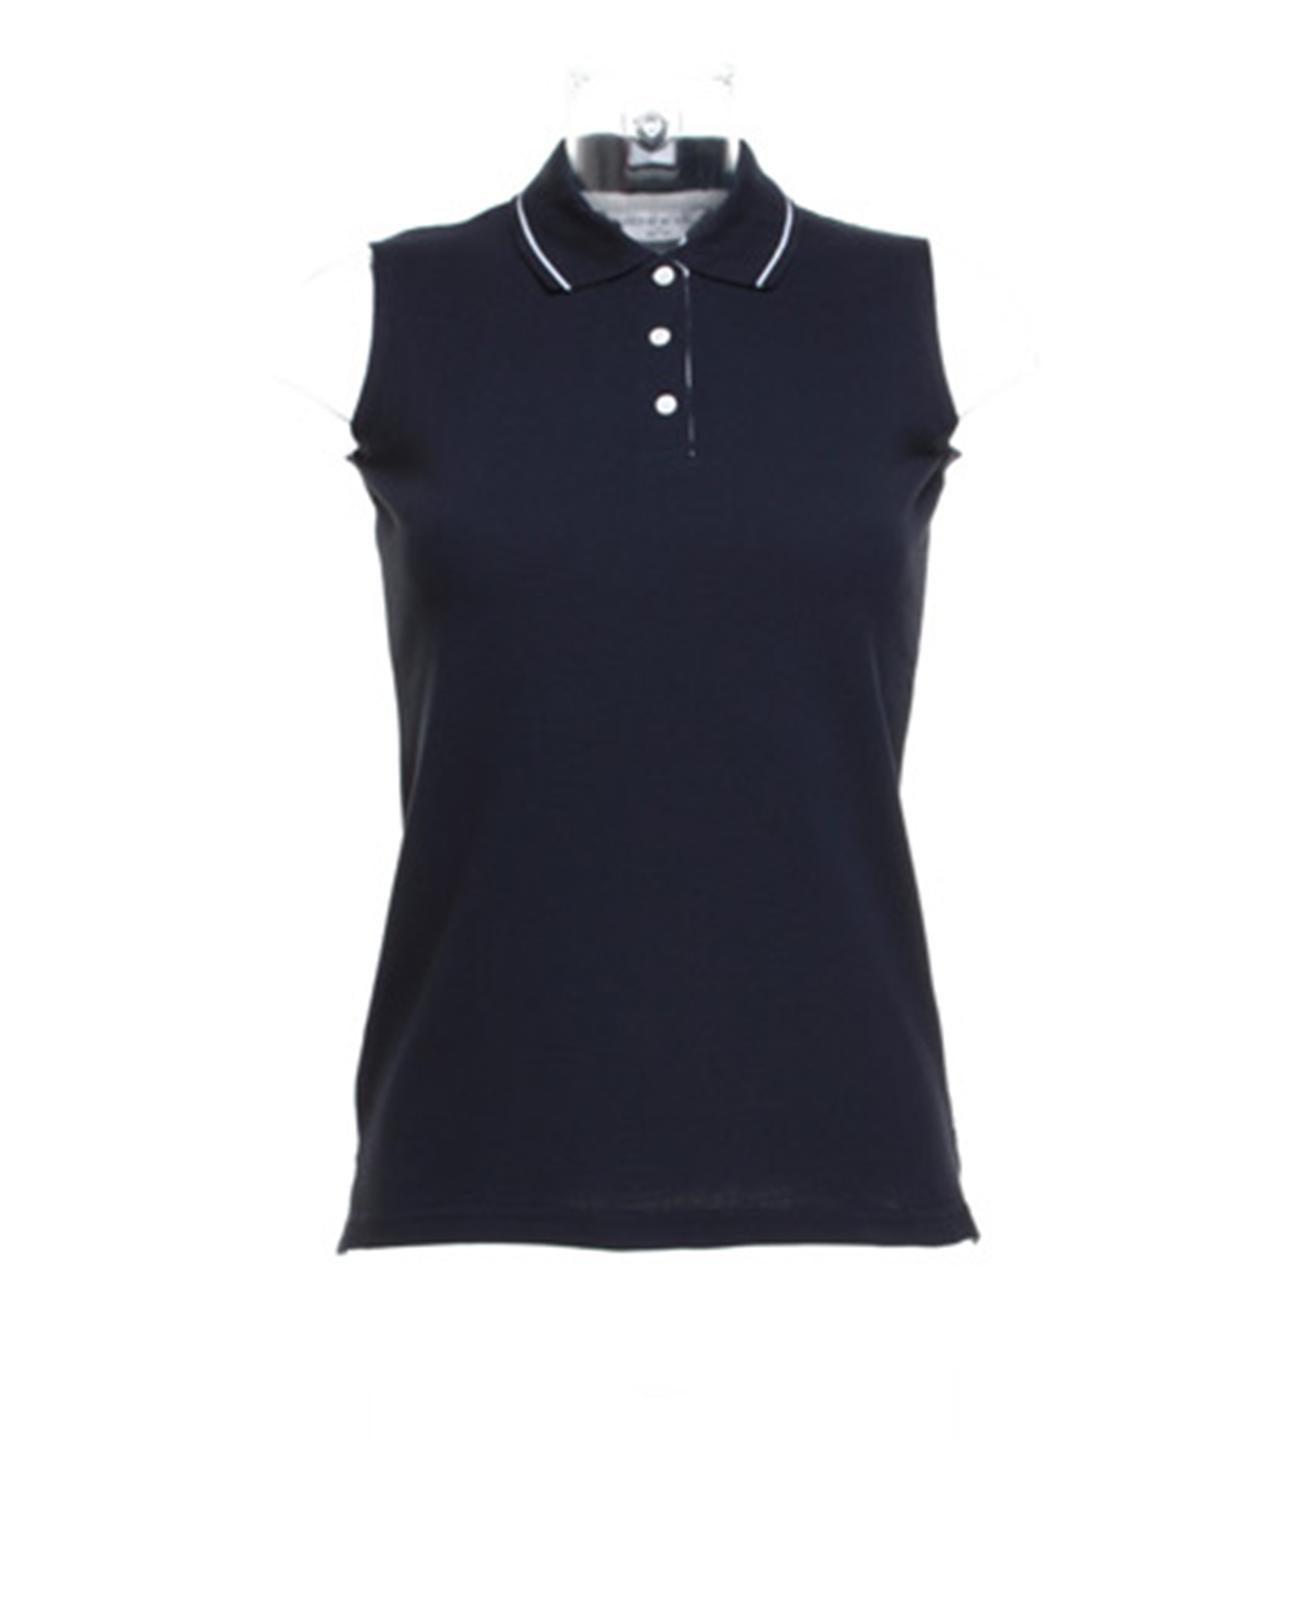 New gamegear womens ladies golf proactive sleeveless polo for Sleeveless shirts for ladies